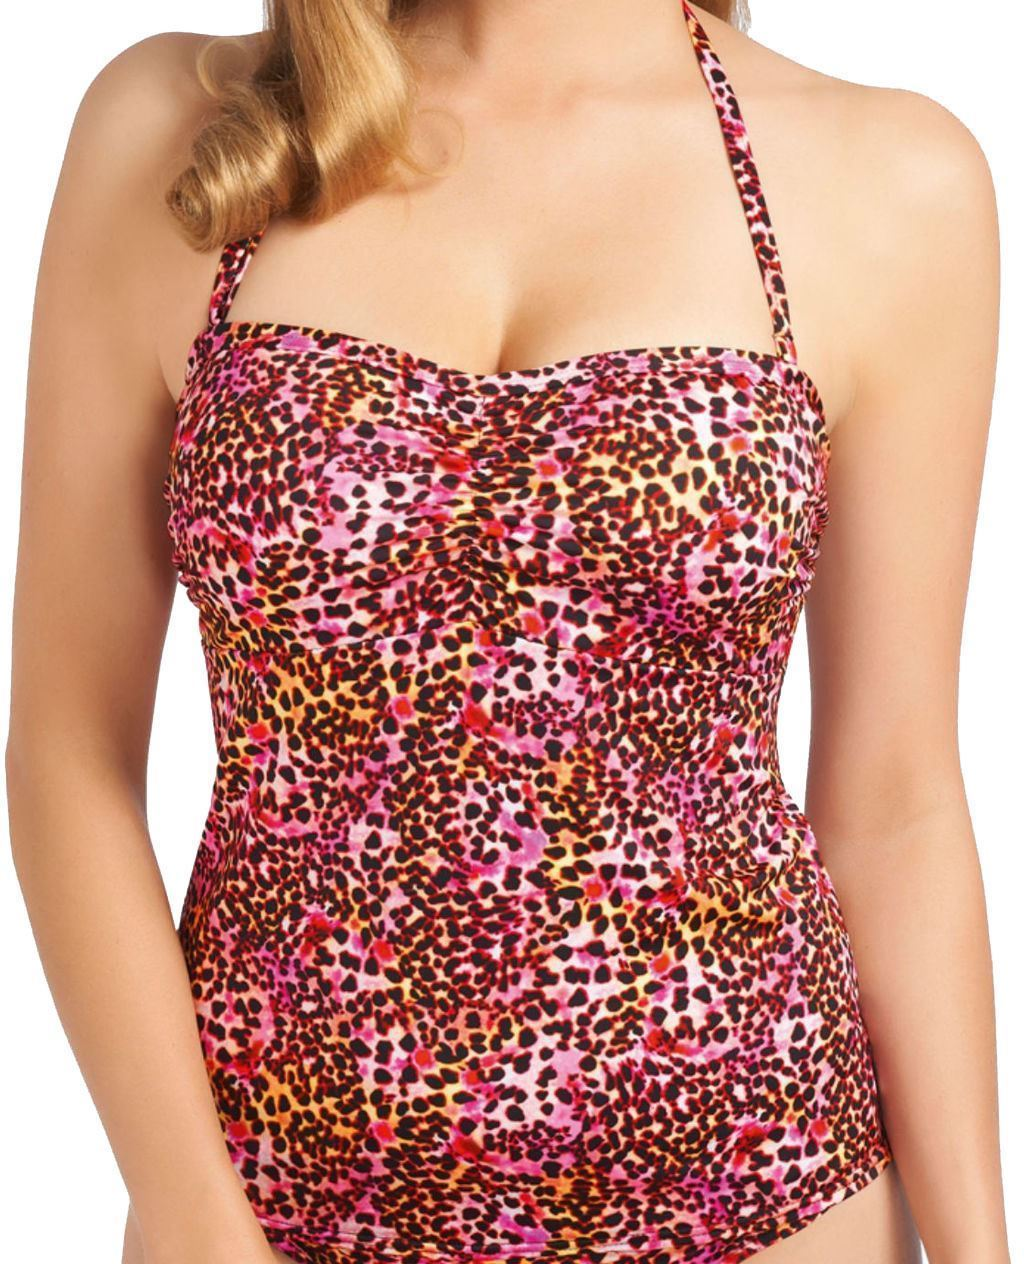 Primary image for Freya Wild Side AS3322 W Underwired Bandeau Tankini Top